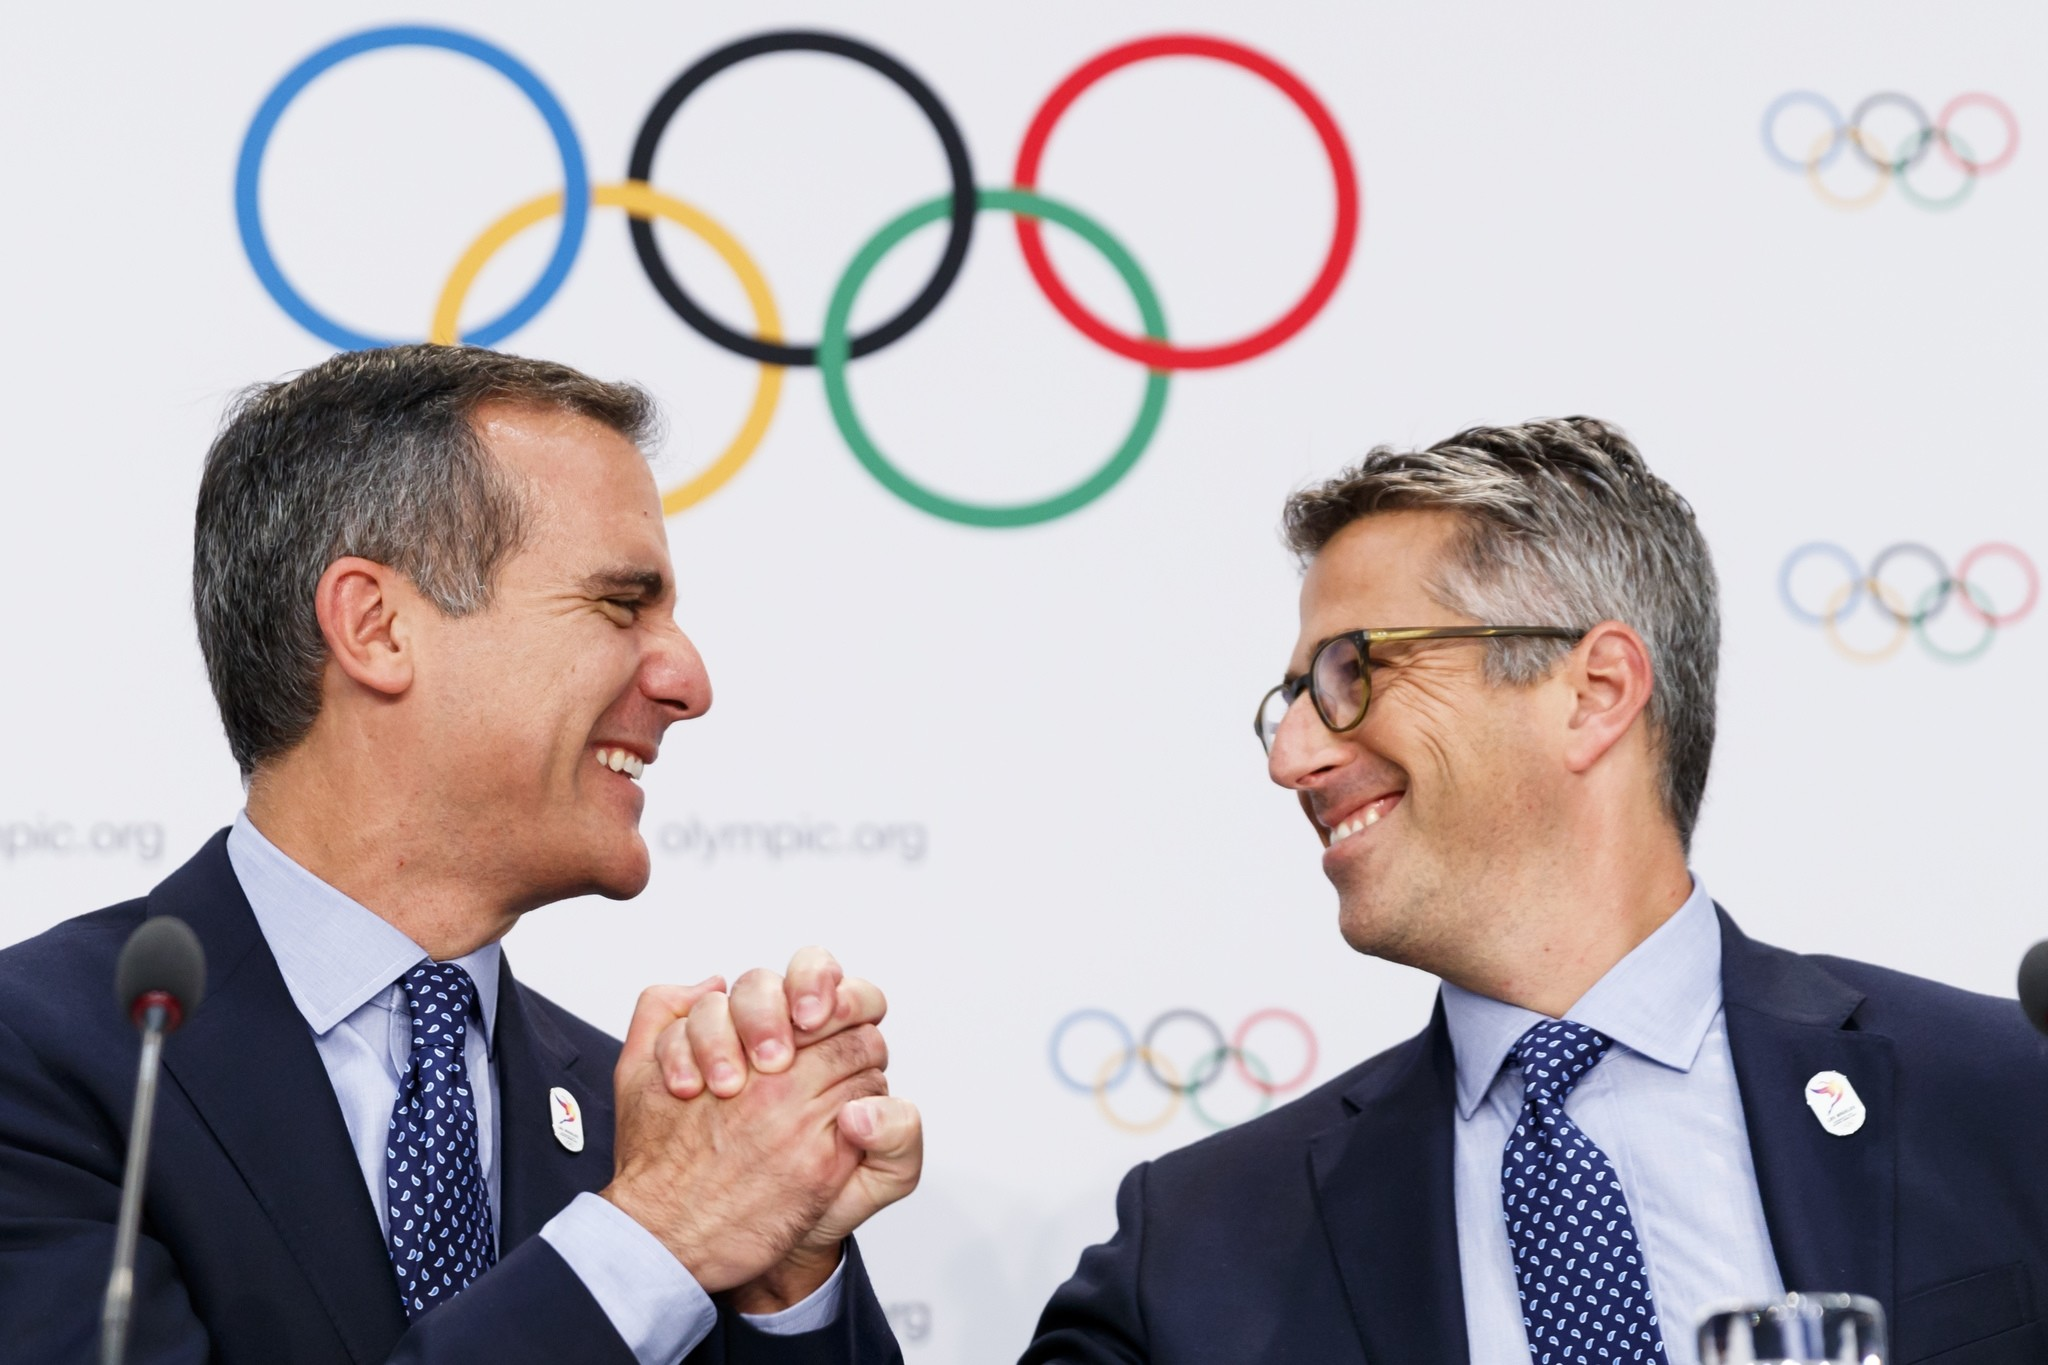 Eric Garcetti Mayor of Los Angeles, left, and Casey Wasserman chairman of Los Angeles 2024, right, shake hands during a press conference. (AP Photo)